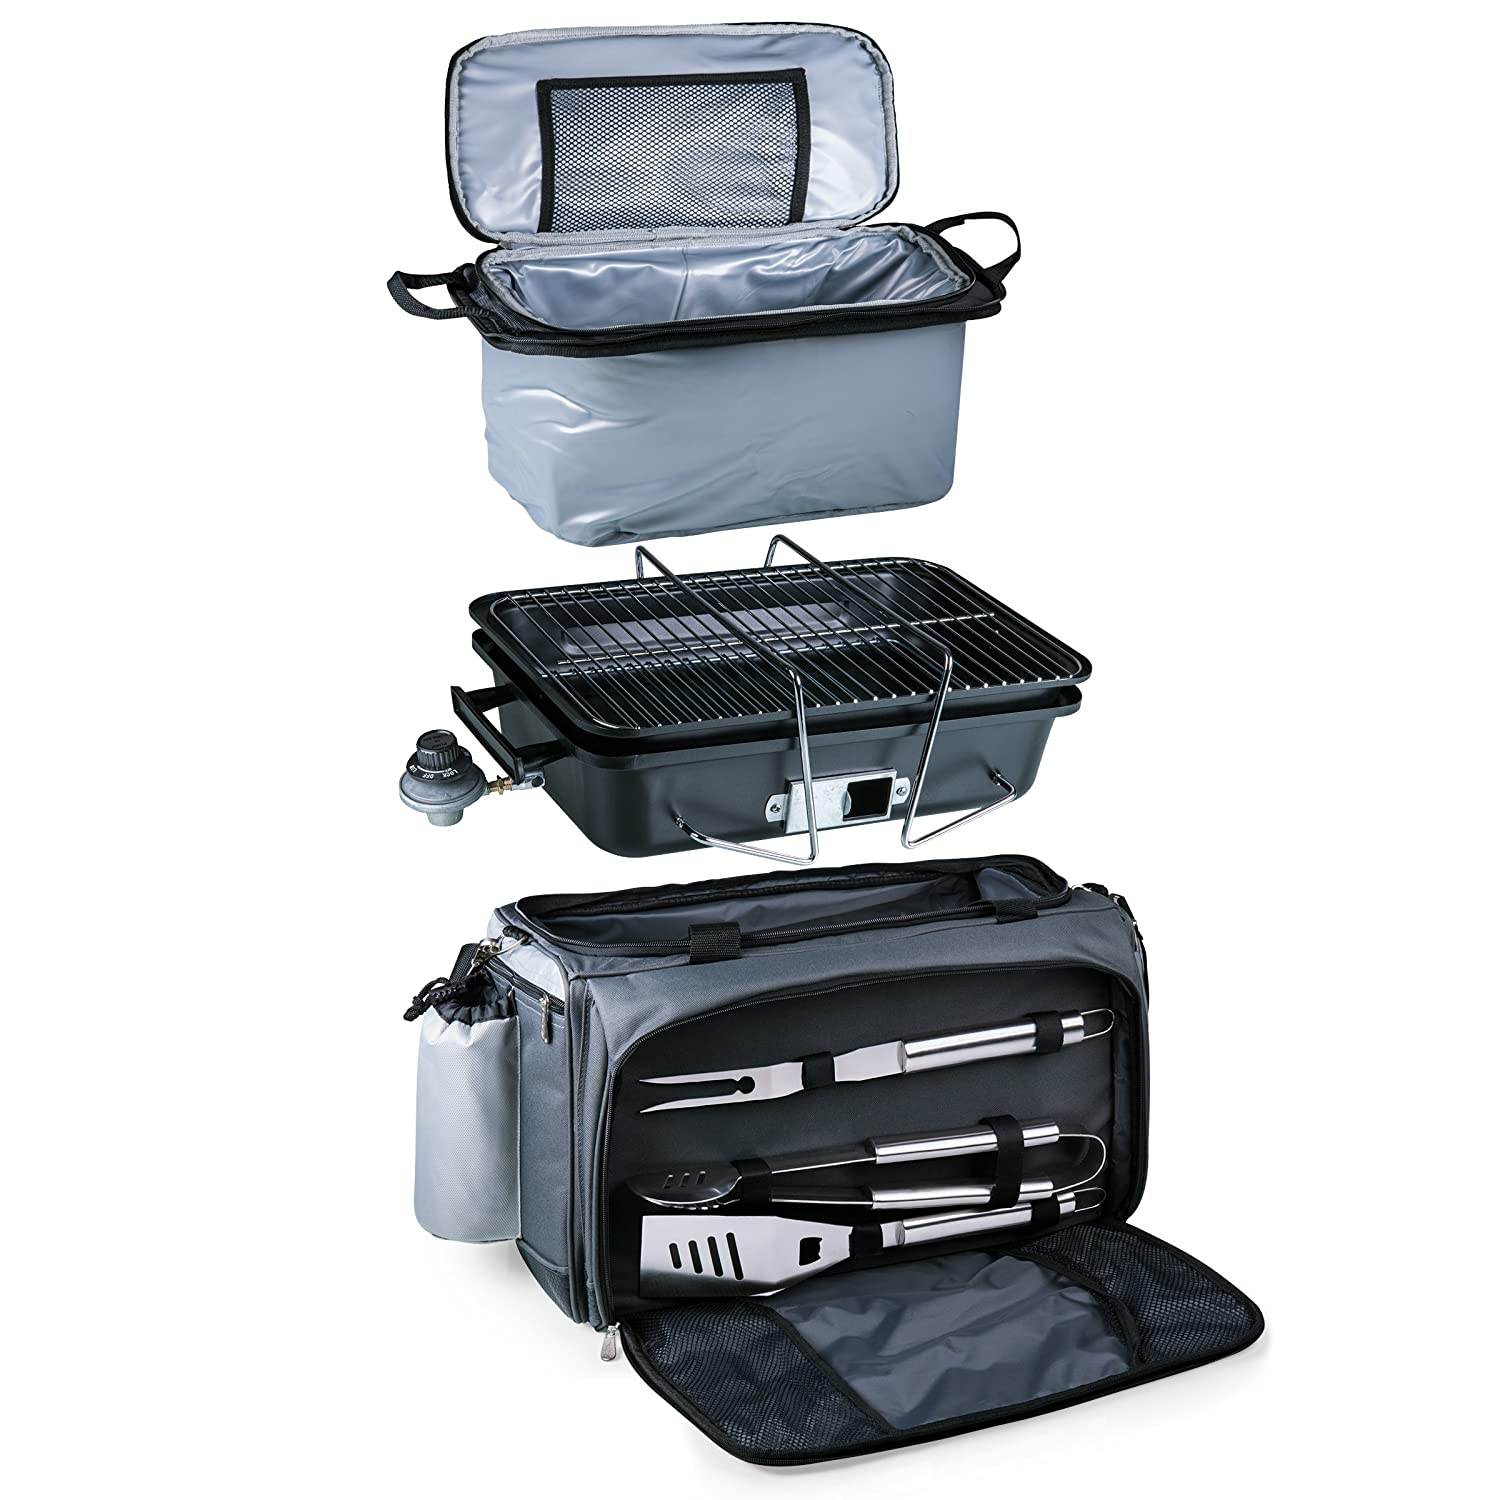 a Picnic Time Brand Vulcan All-In-One Tailgating Cooler//BBQ Set 770-00-175-000-0 ONIVA